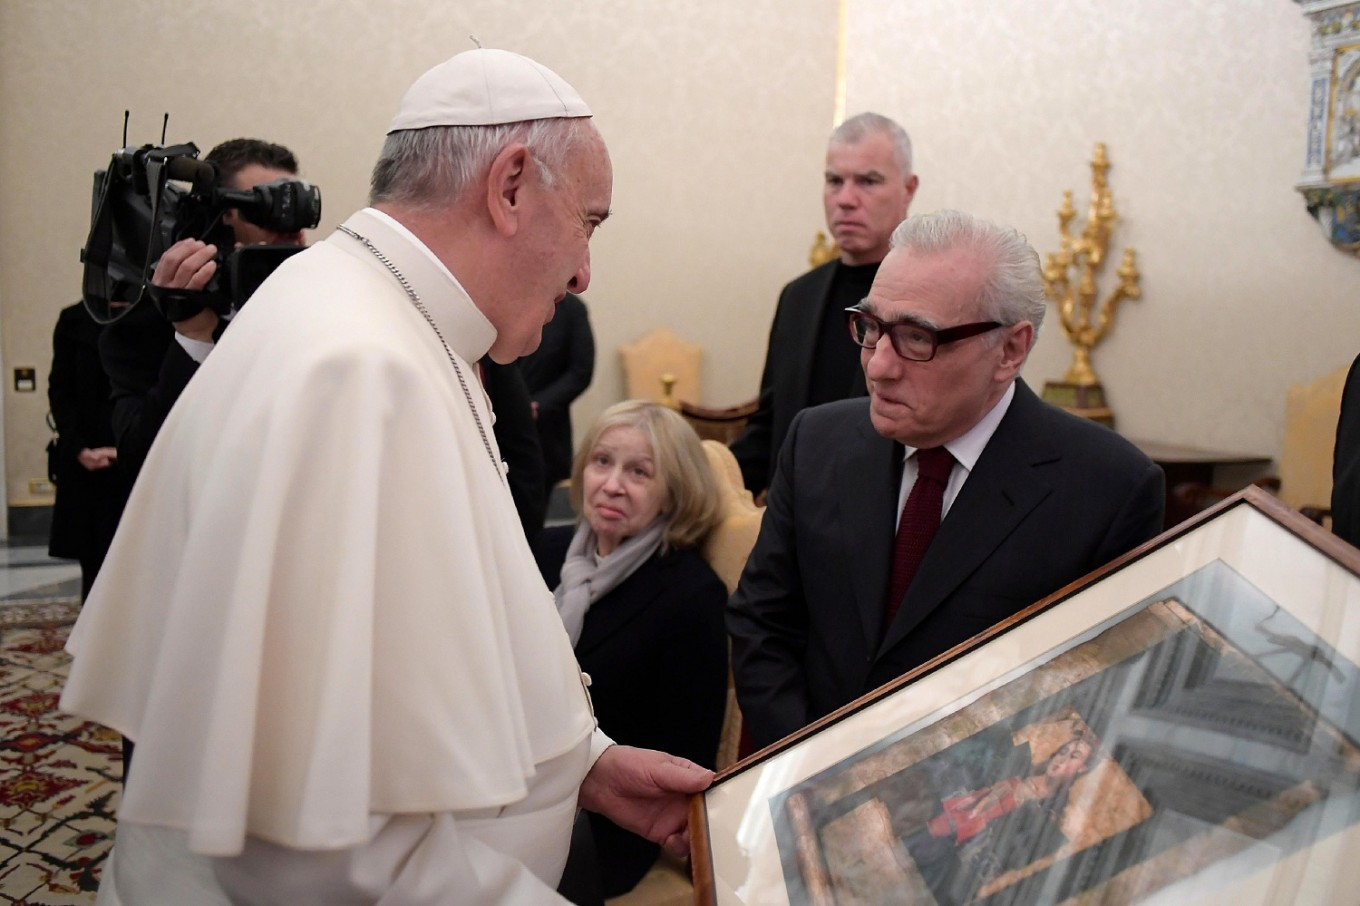 Girl meets pope and promptly steals his hat